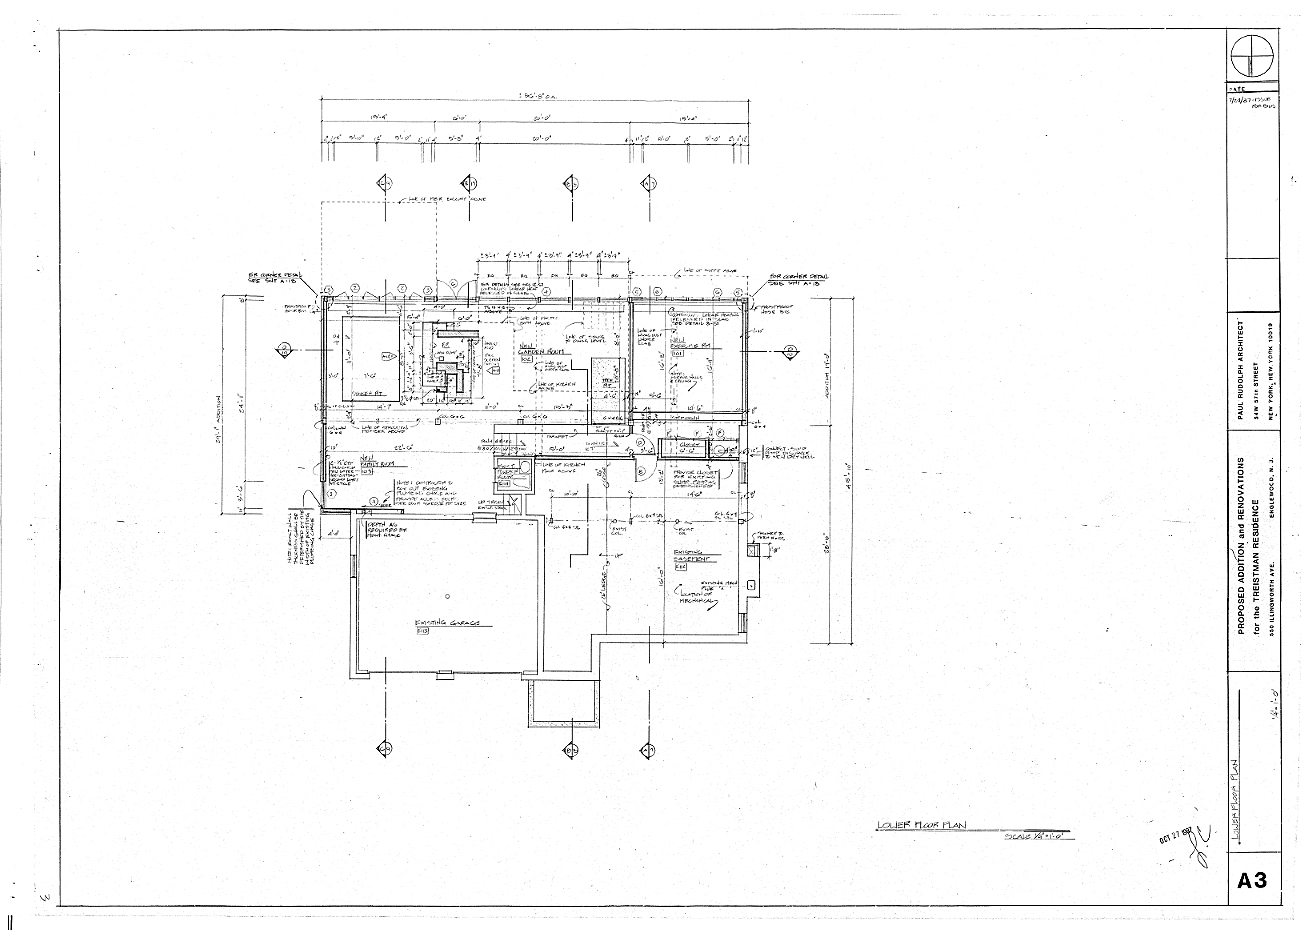 Residence for Mr. and Mrs. Treistman, Englewood, New Jersey. Lower Level Plan, Sheet A3.